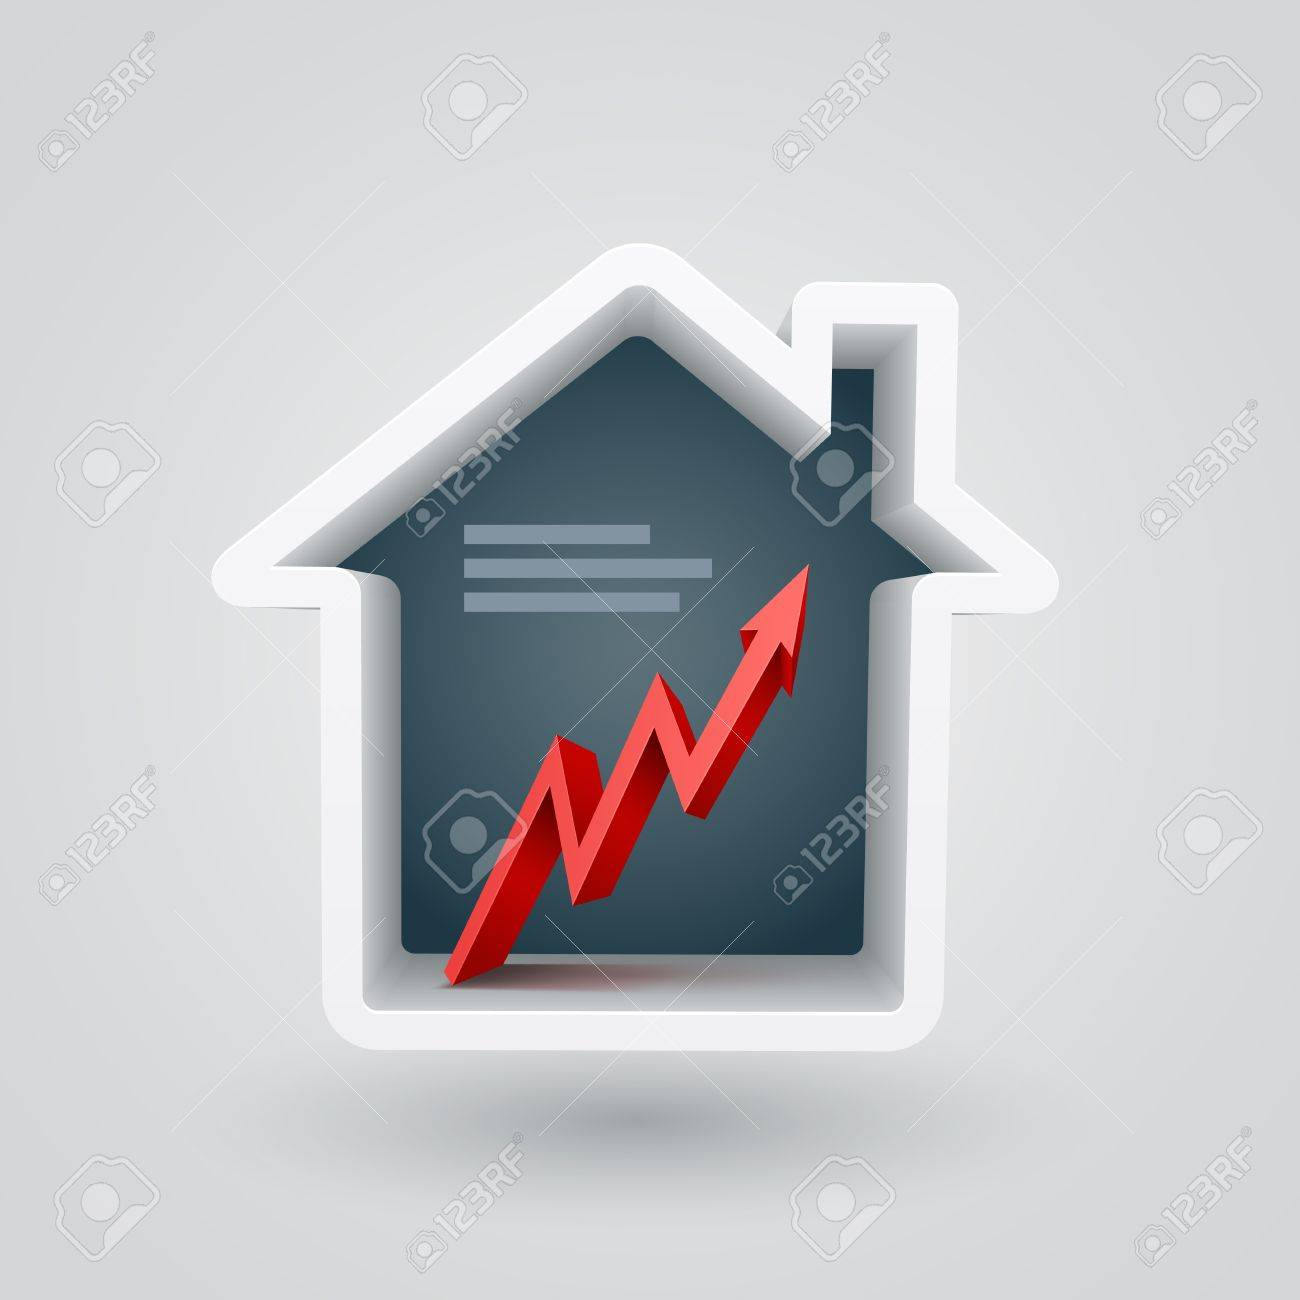 Vector illustraton of real estate themed house  Chart Stock Vector - 21037324